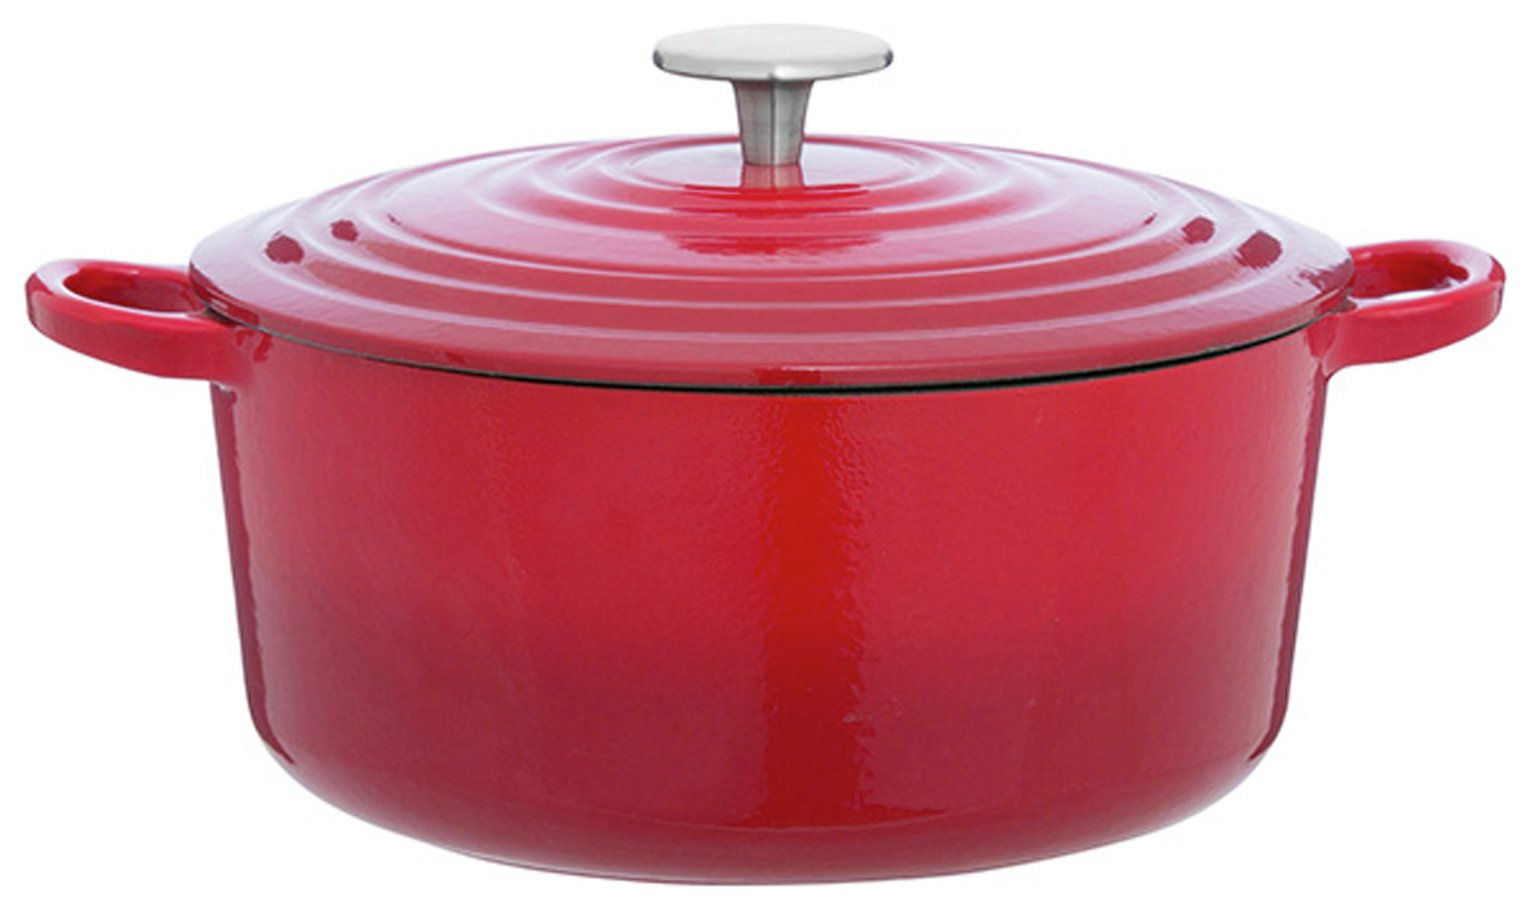 Sainsbury's Home 3.3 Litre Cast Iron Casserole Dish - Red